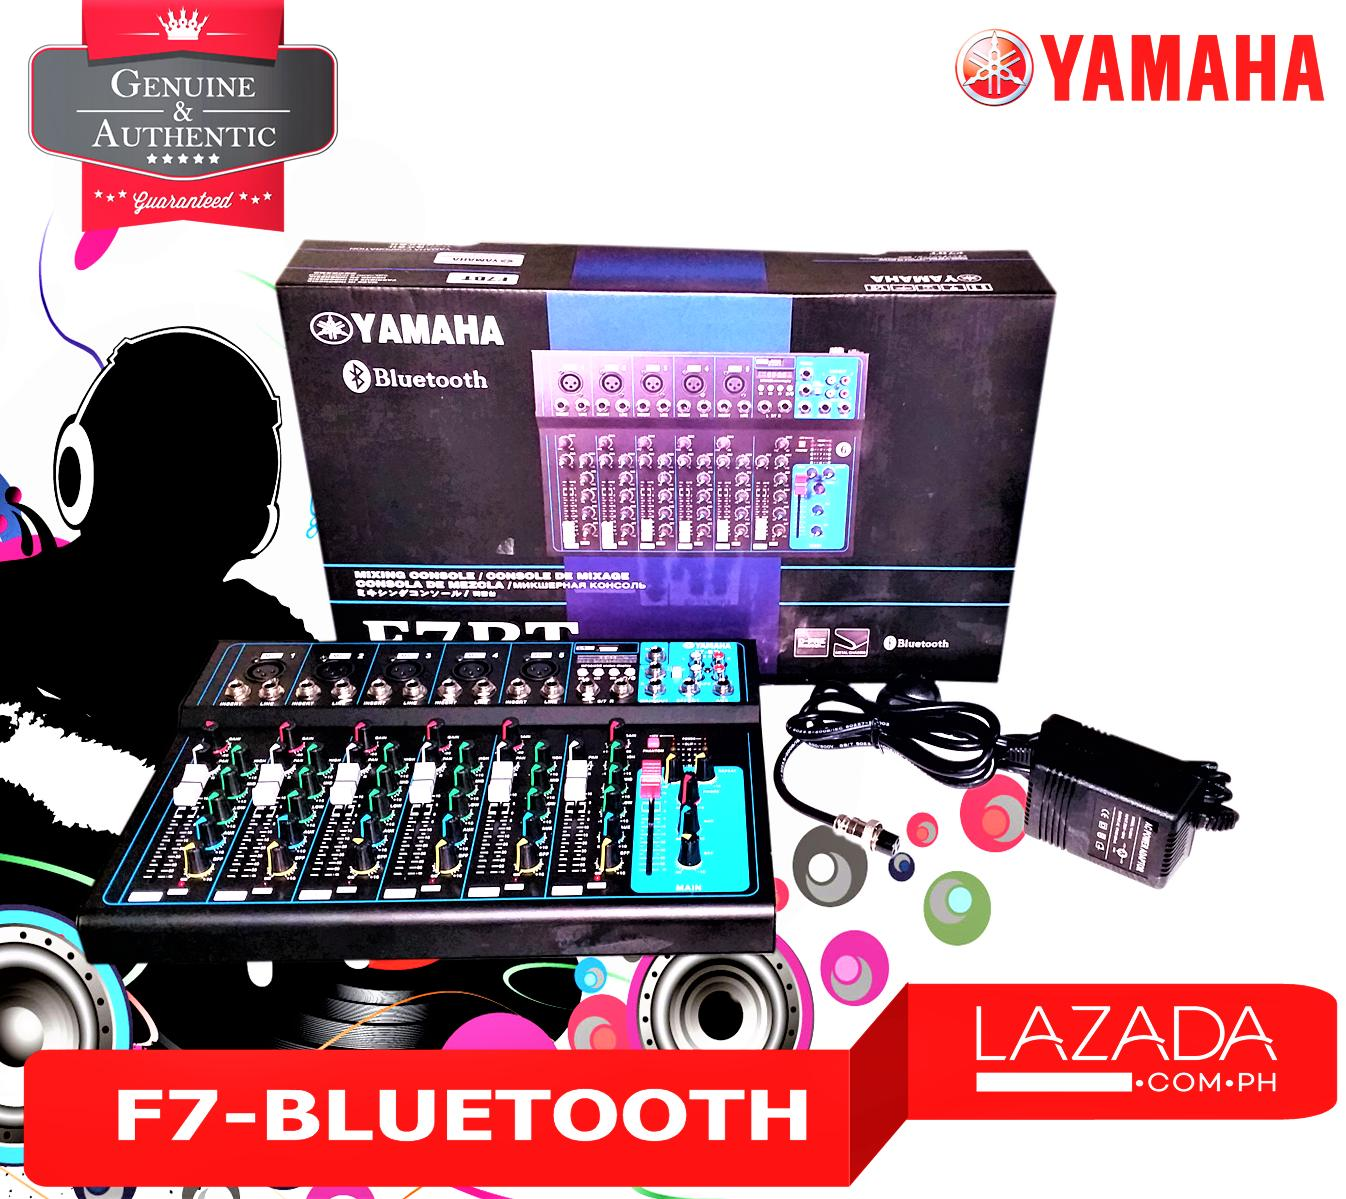 Yamaha F7-USB-BLK 7 Channel Professional Mixer MP3 player with USB port,  Bluetooth (Black)